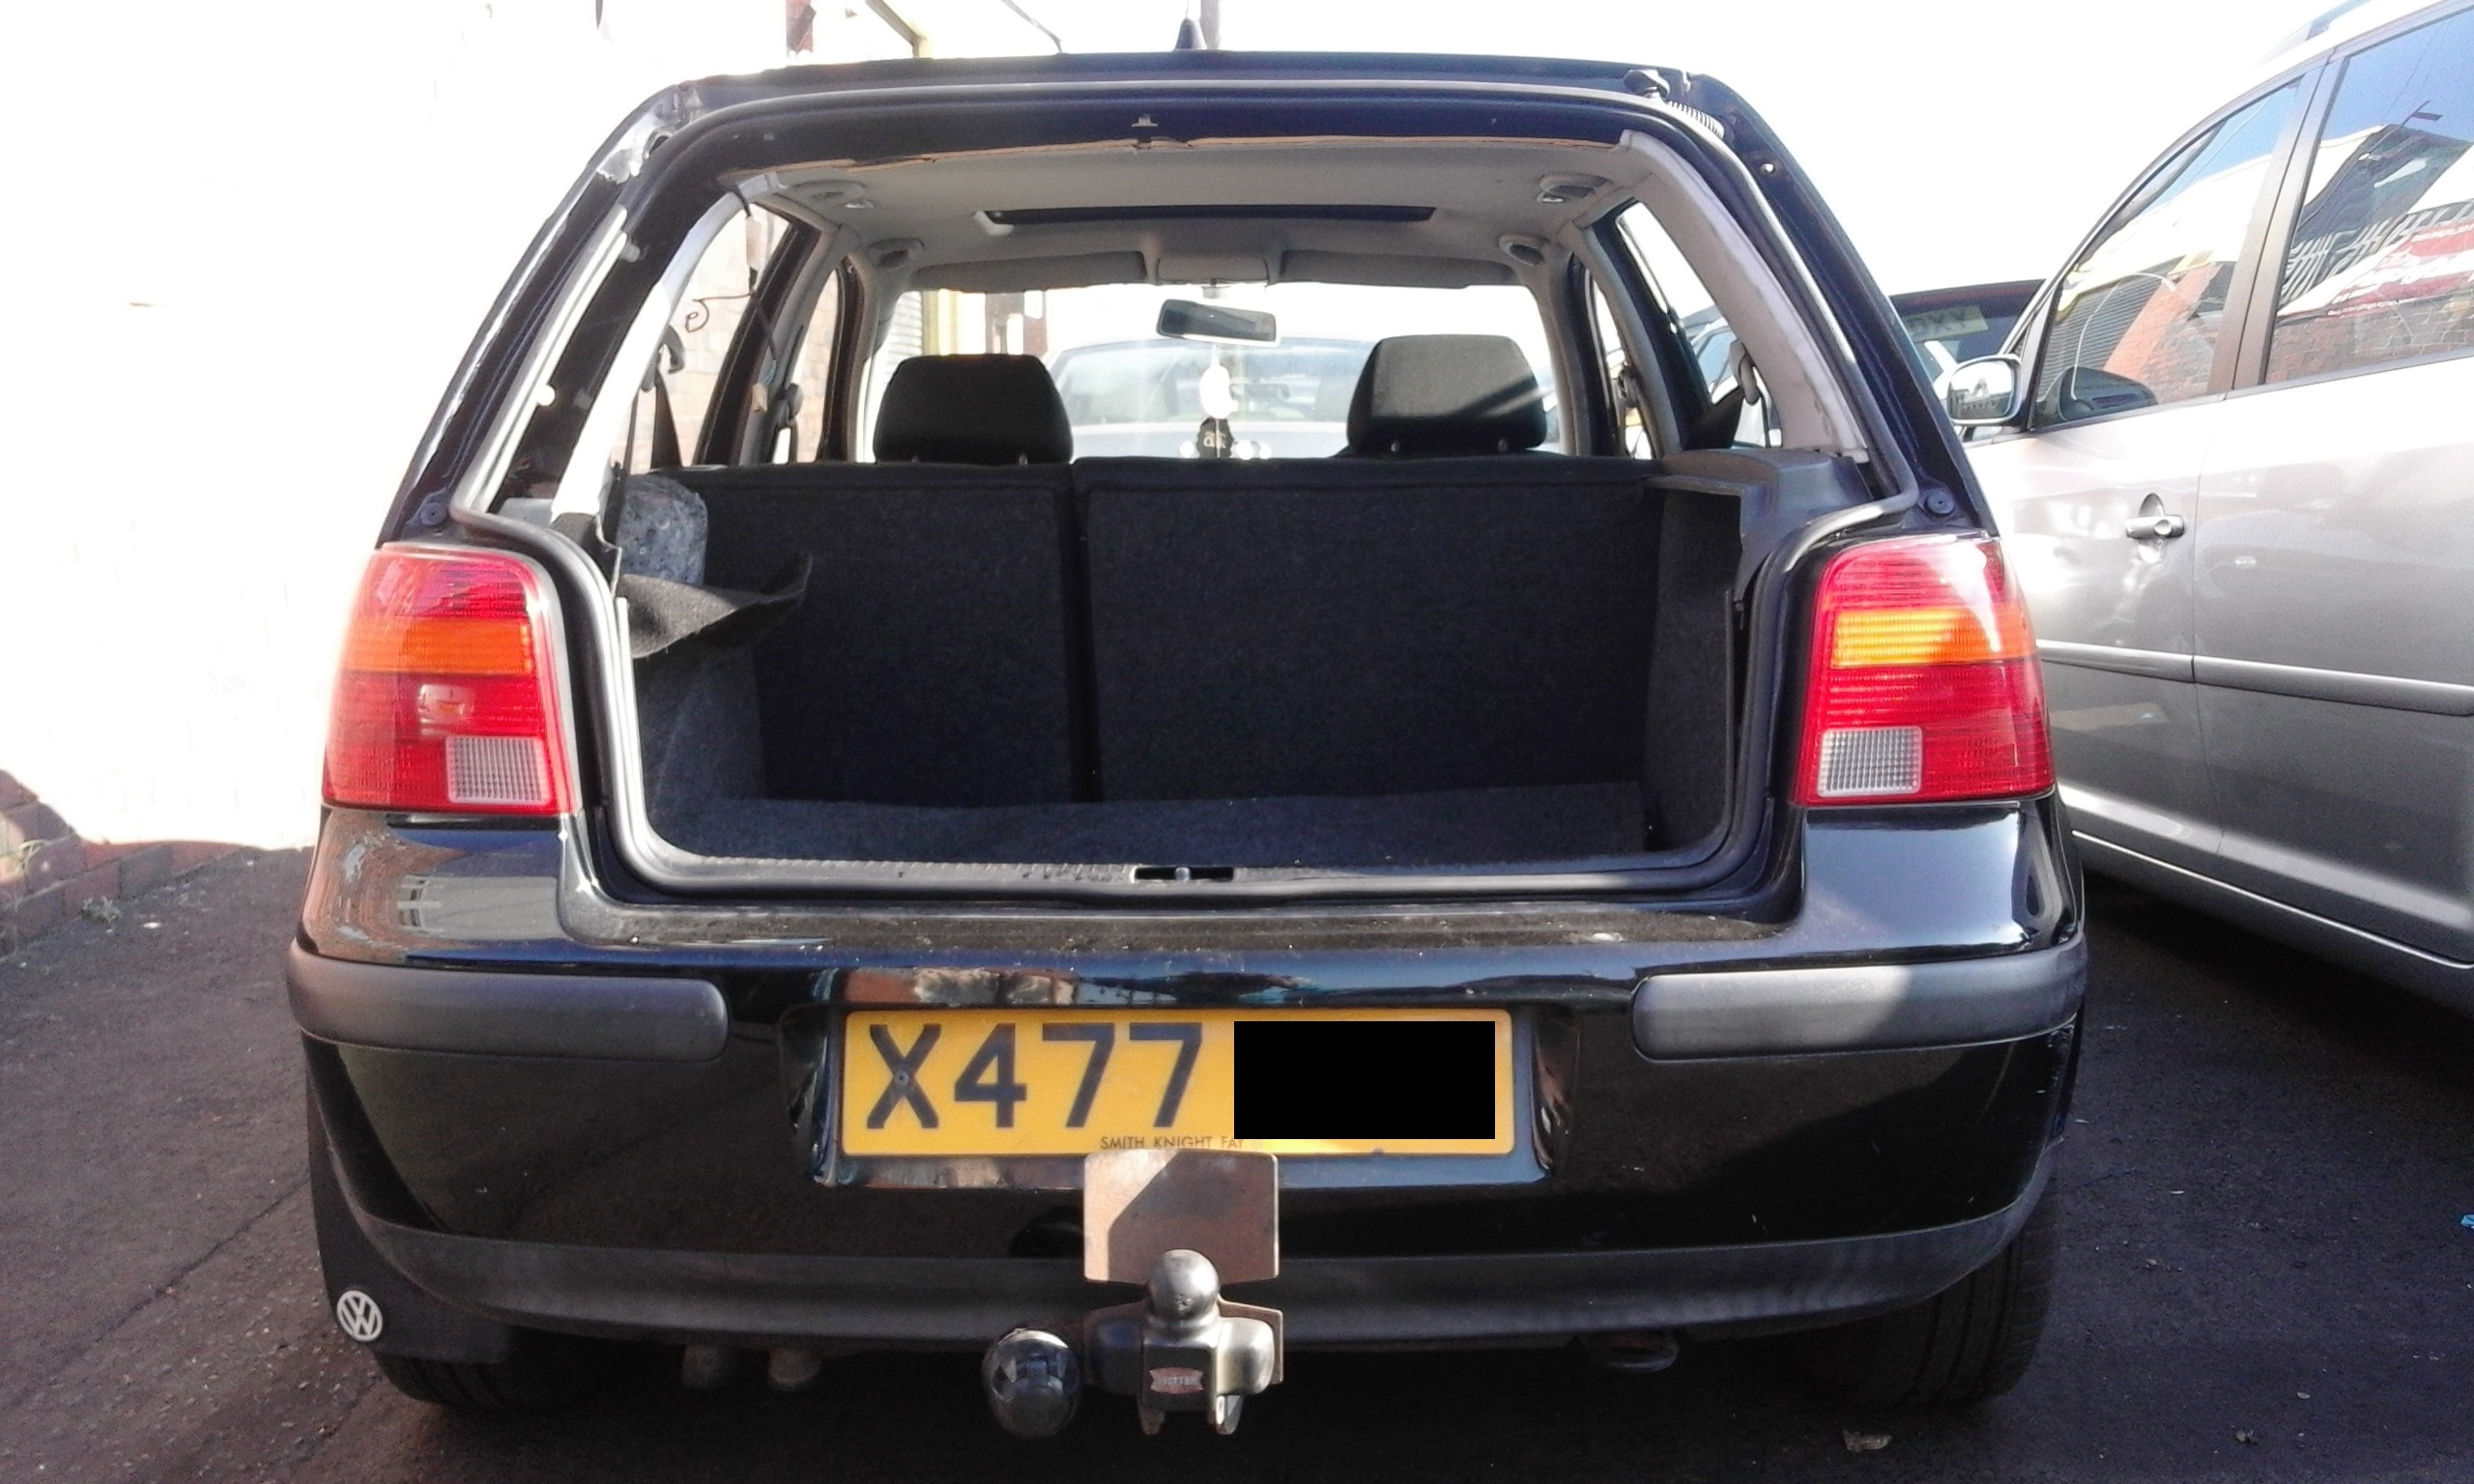 2001 vw golf mk 4 1 9 tdi breaking engine code alh vag spares. Black Bedroom Furniture Sets. Home Design Ideas